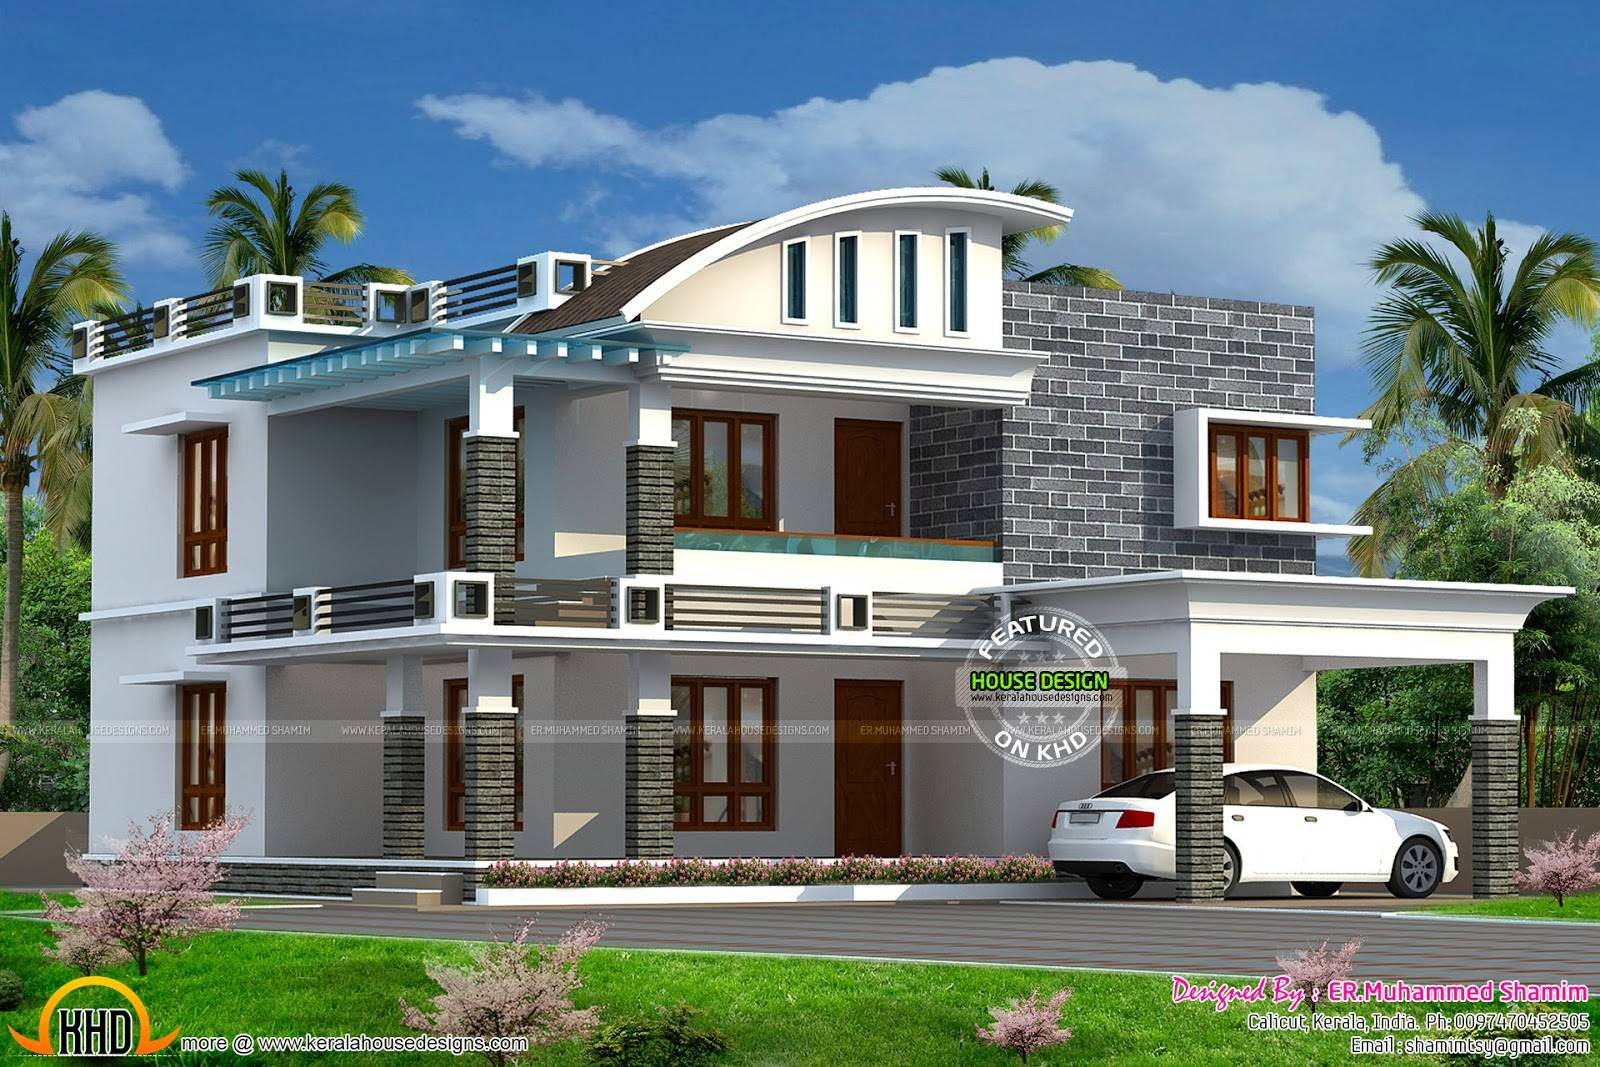 Curved Roof Mix House Kerala Home Design Floor House Plans 136247